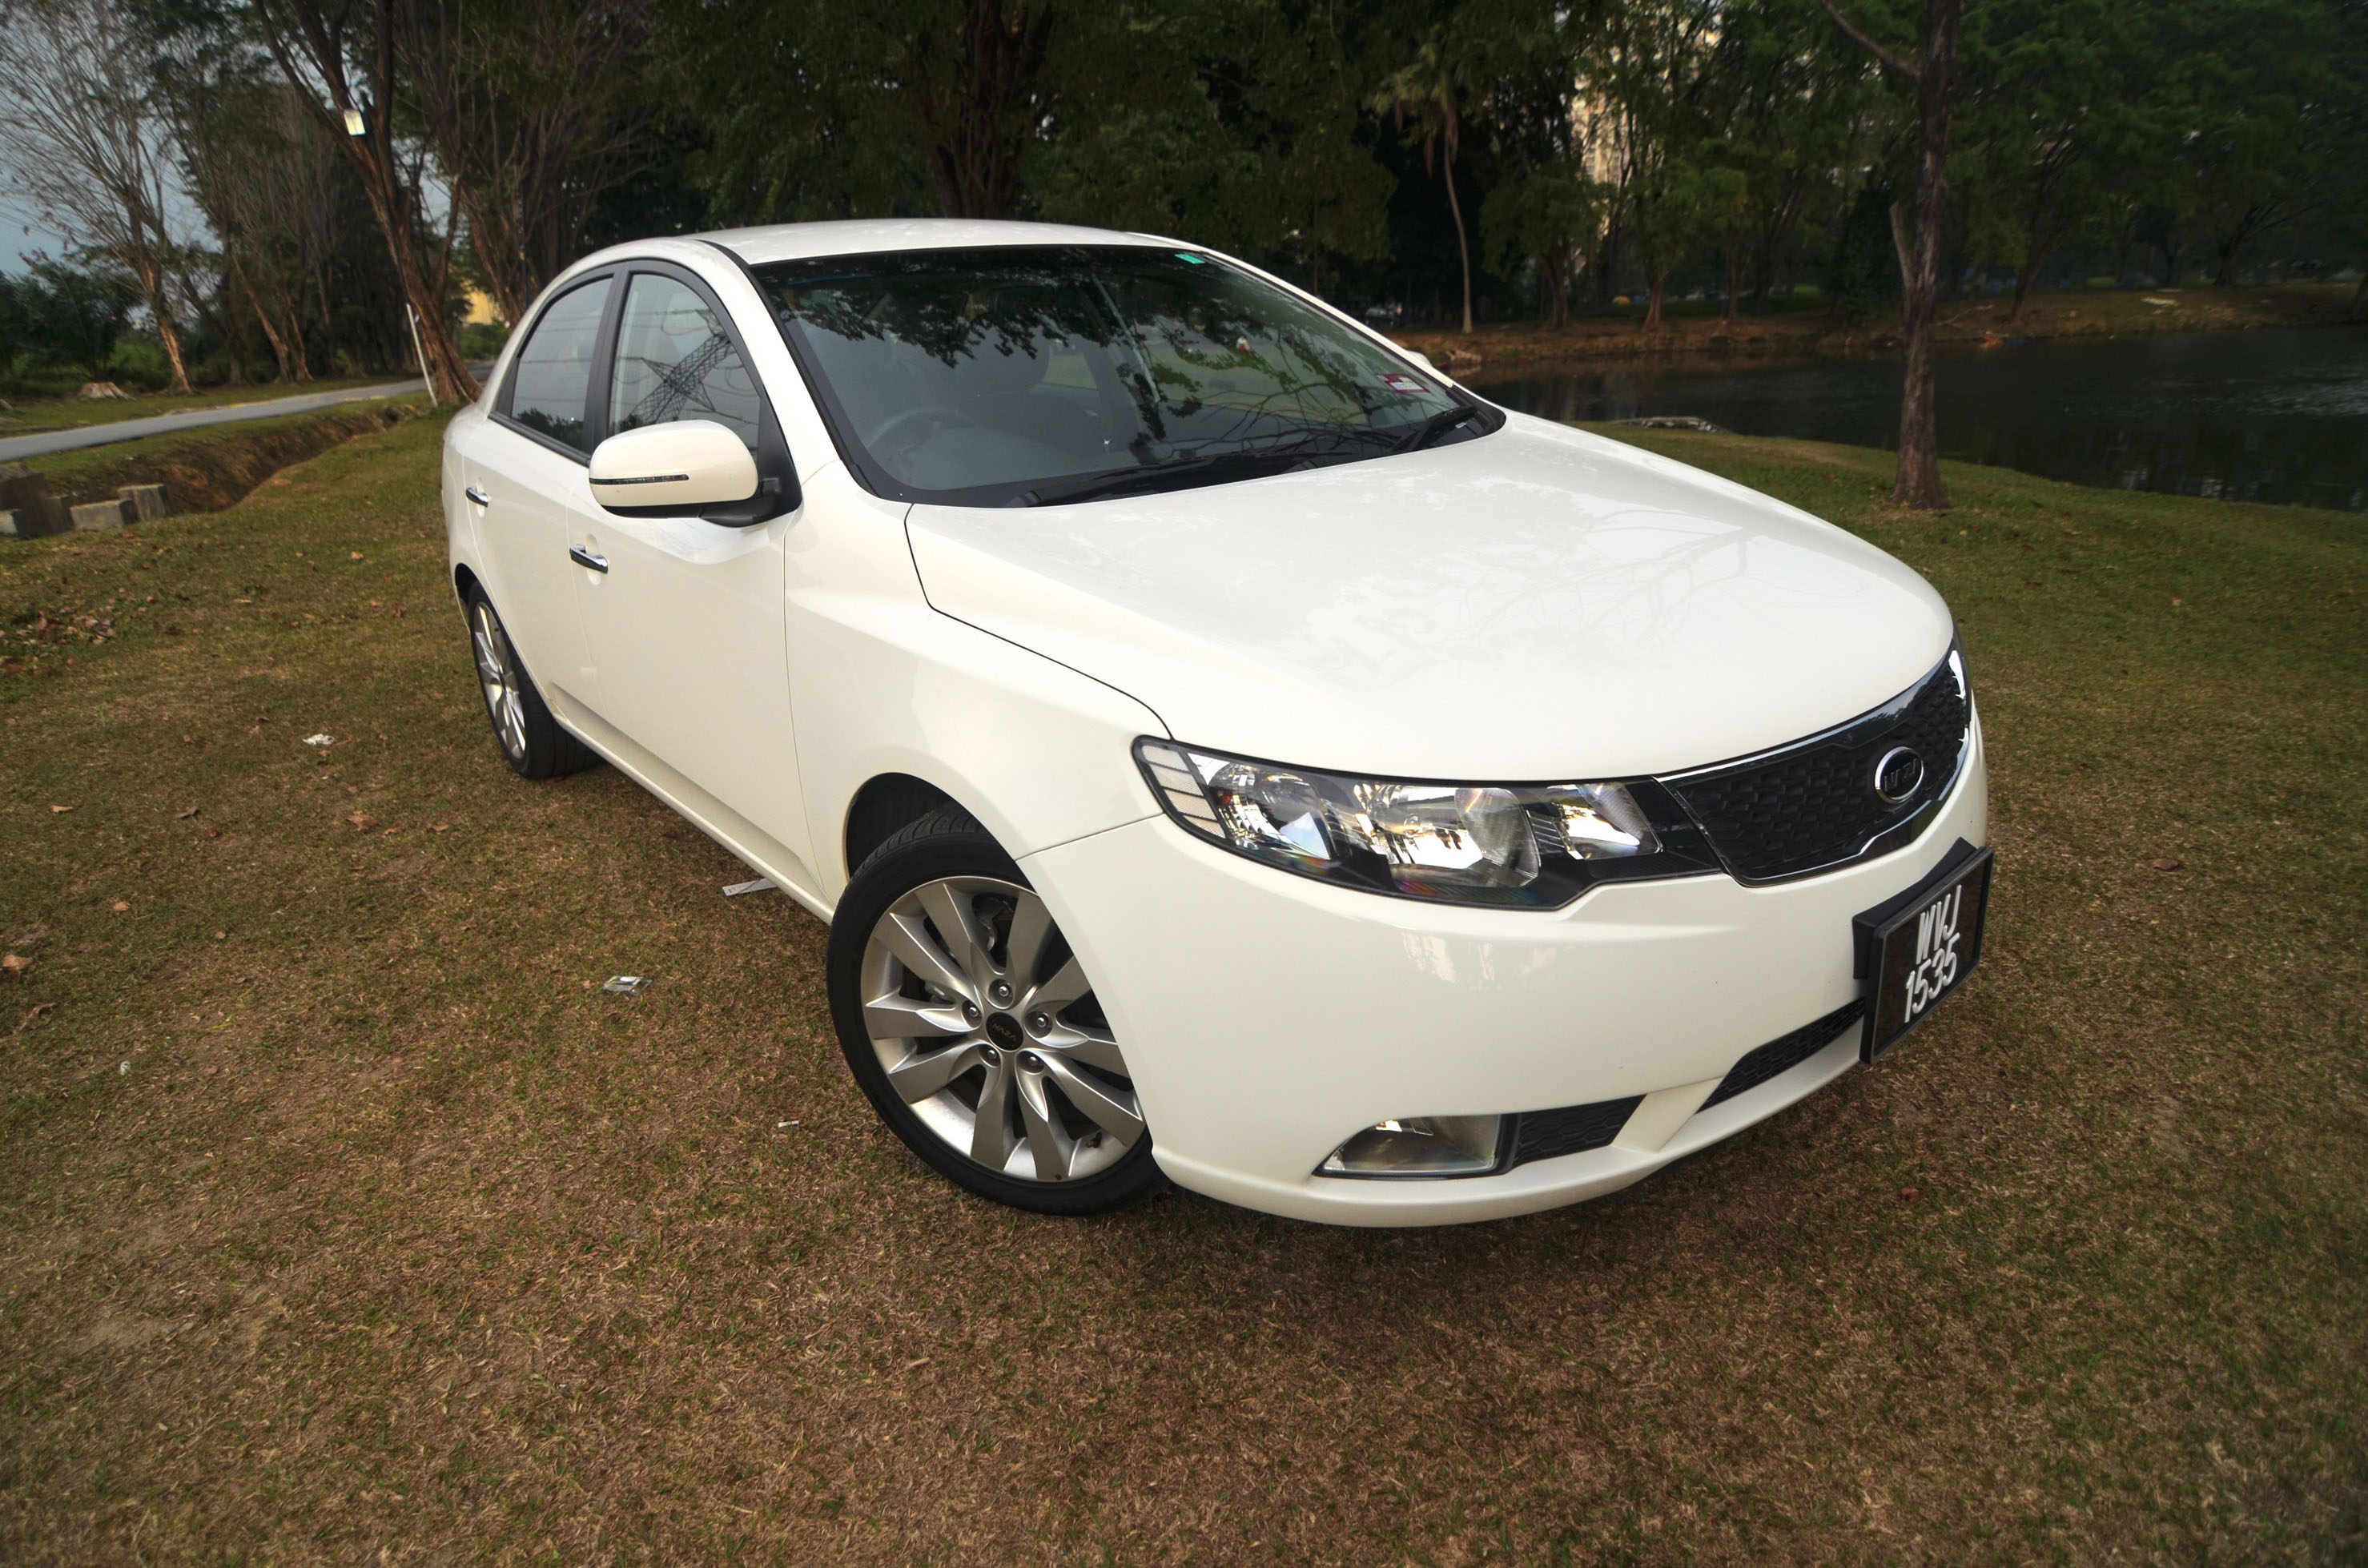 Kia Forte 2 0 - I am left sufficiently speechless - kensomuse